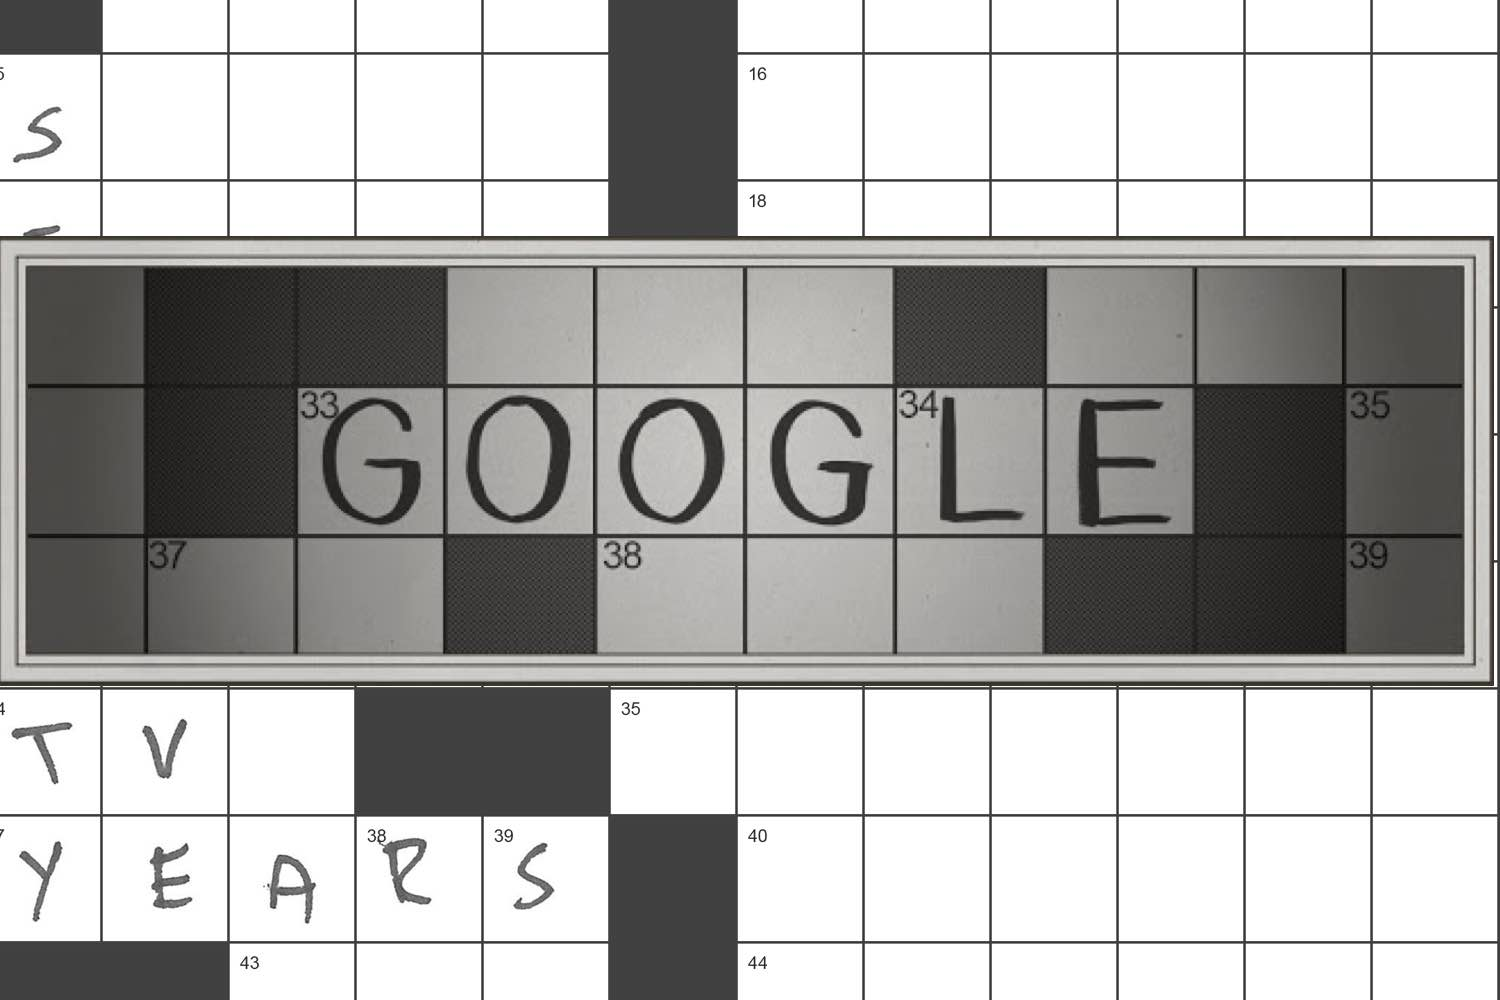 crosswords online, crosswords google